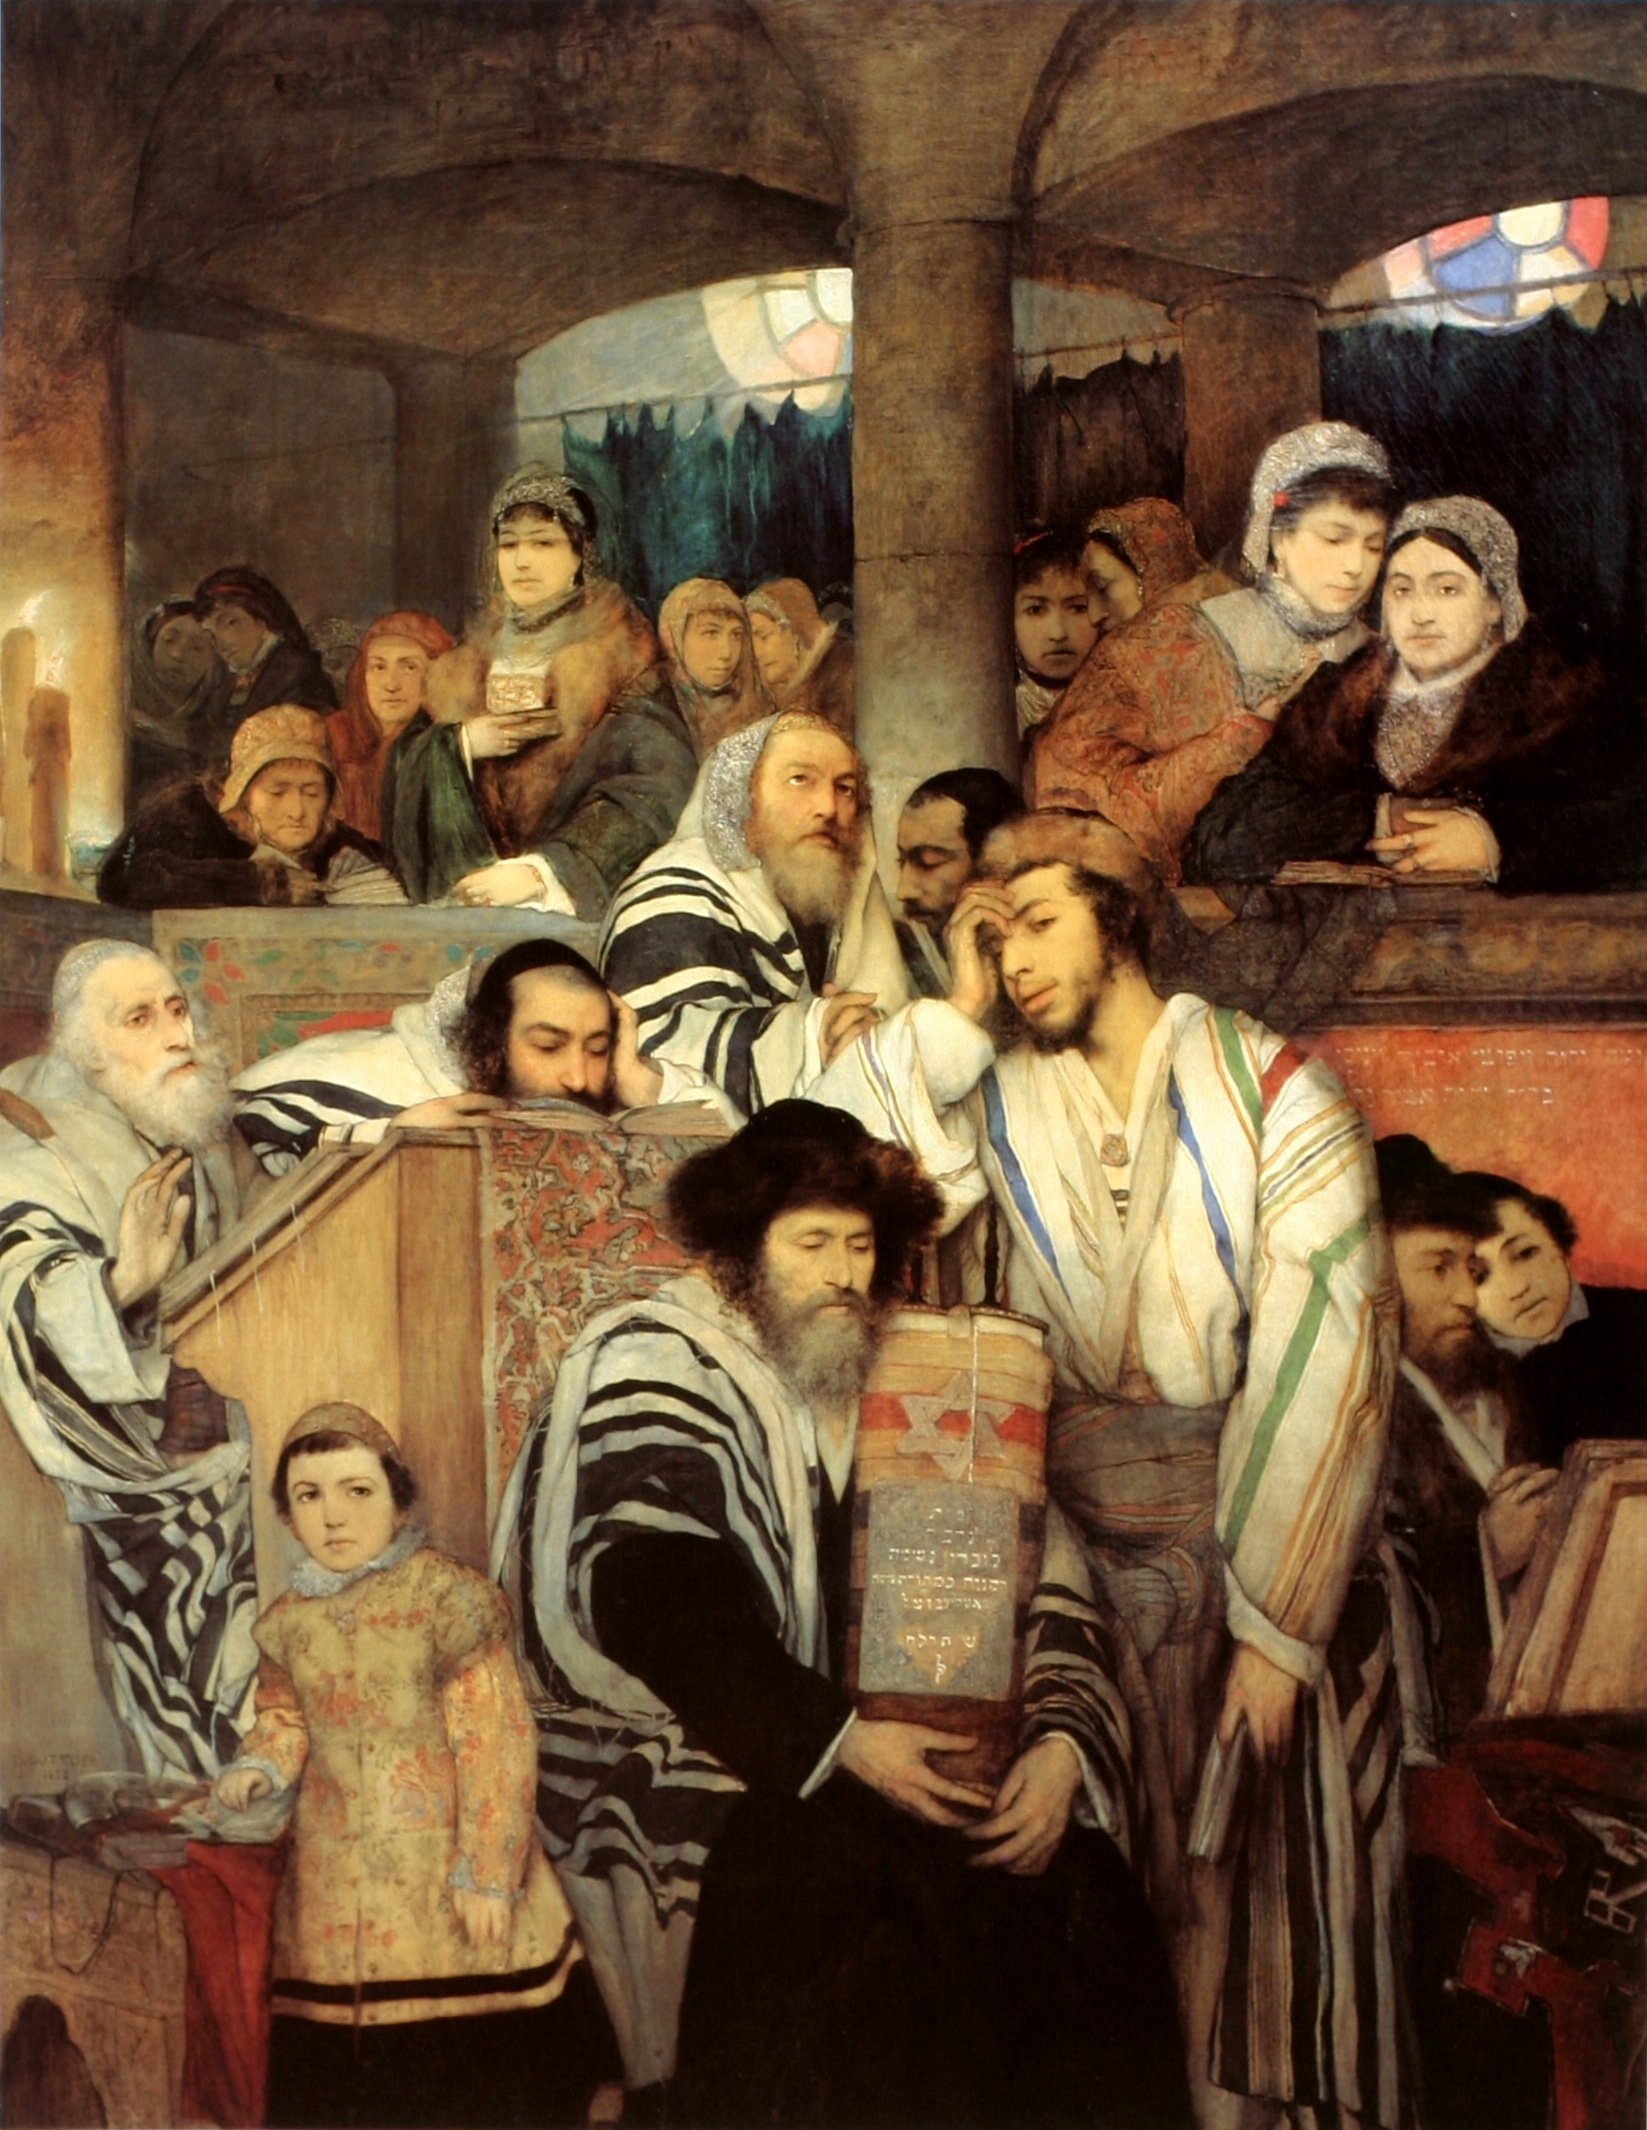 Click photo to download. Caption: An illustration of Jews praying in synagogue on Yom Kippur. Credit: Maurycy Gottlieb via Wikimedia Commons.